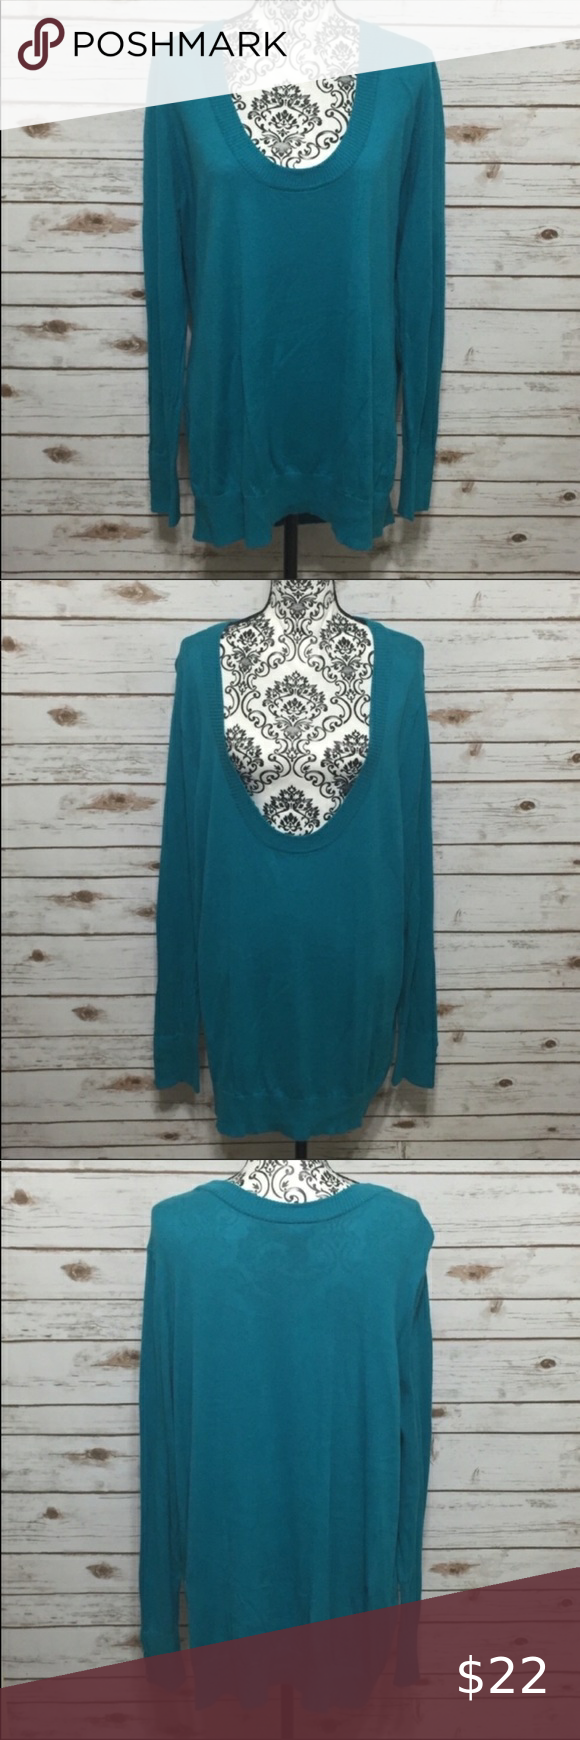 Lane Bryant Deep V-Neck Sweater Size 26/28 teal long sleeve deep v-neck sweater from Lane Bryant. Both sleeve cuffs have 4 buttons. 100% cotton. Sweater is in excellent, like new condition with no pilling.  -0214 Lane Bryant Sweaters V-Necks